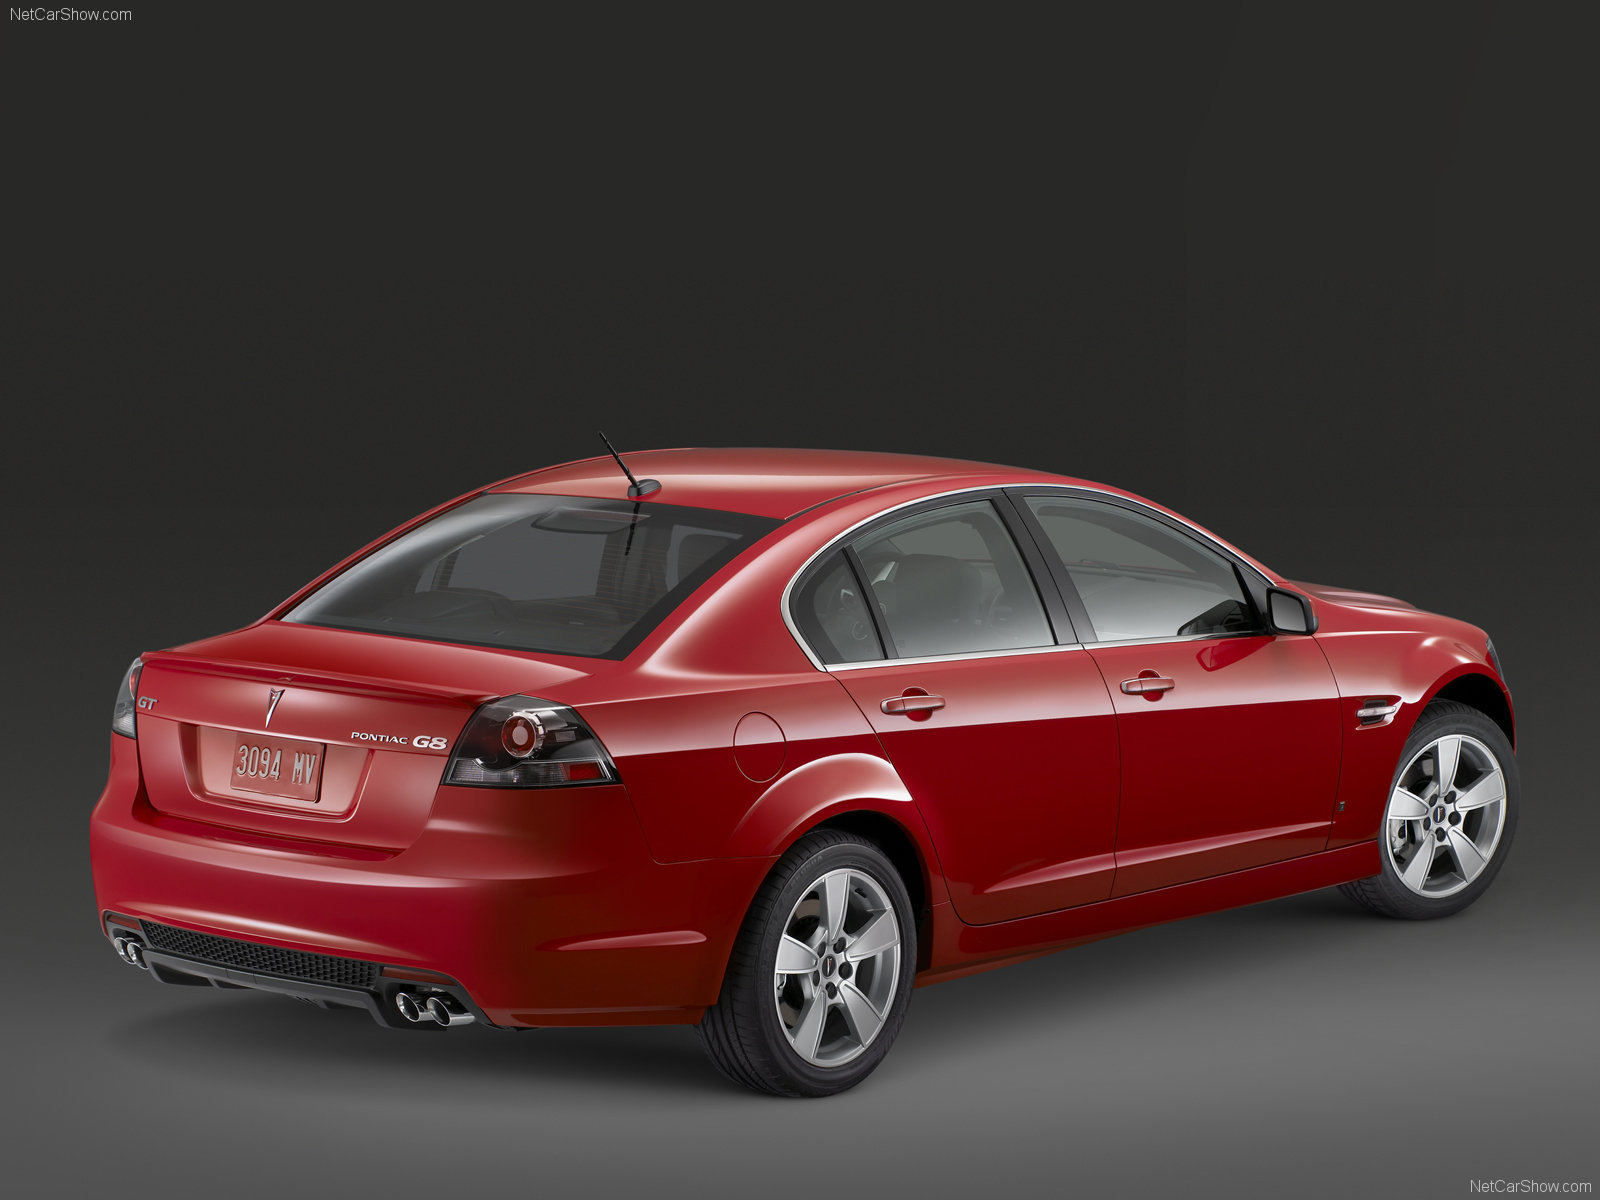 Pontiac G8 GT photo 52913